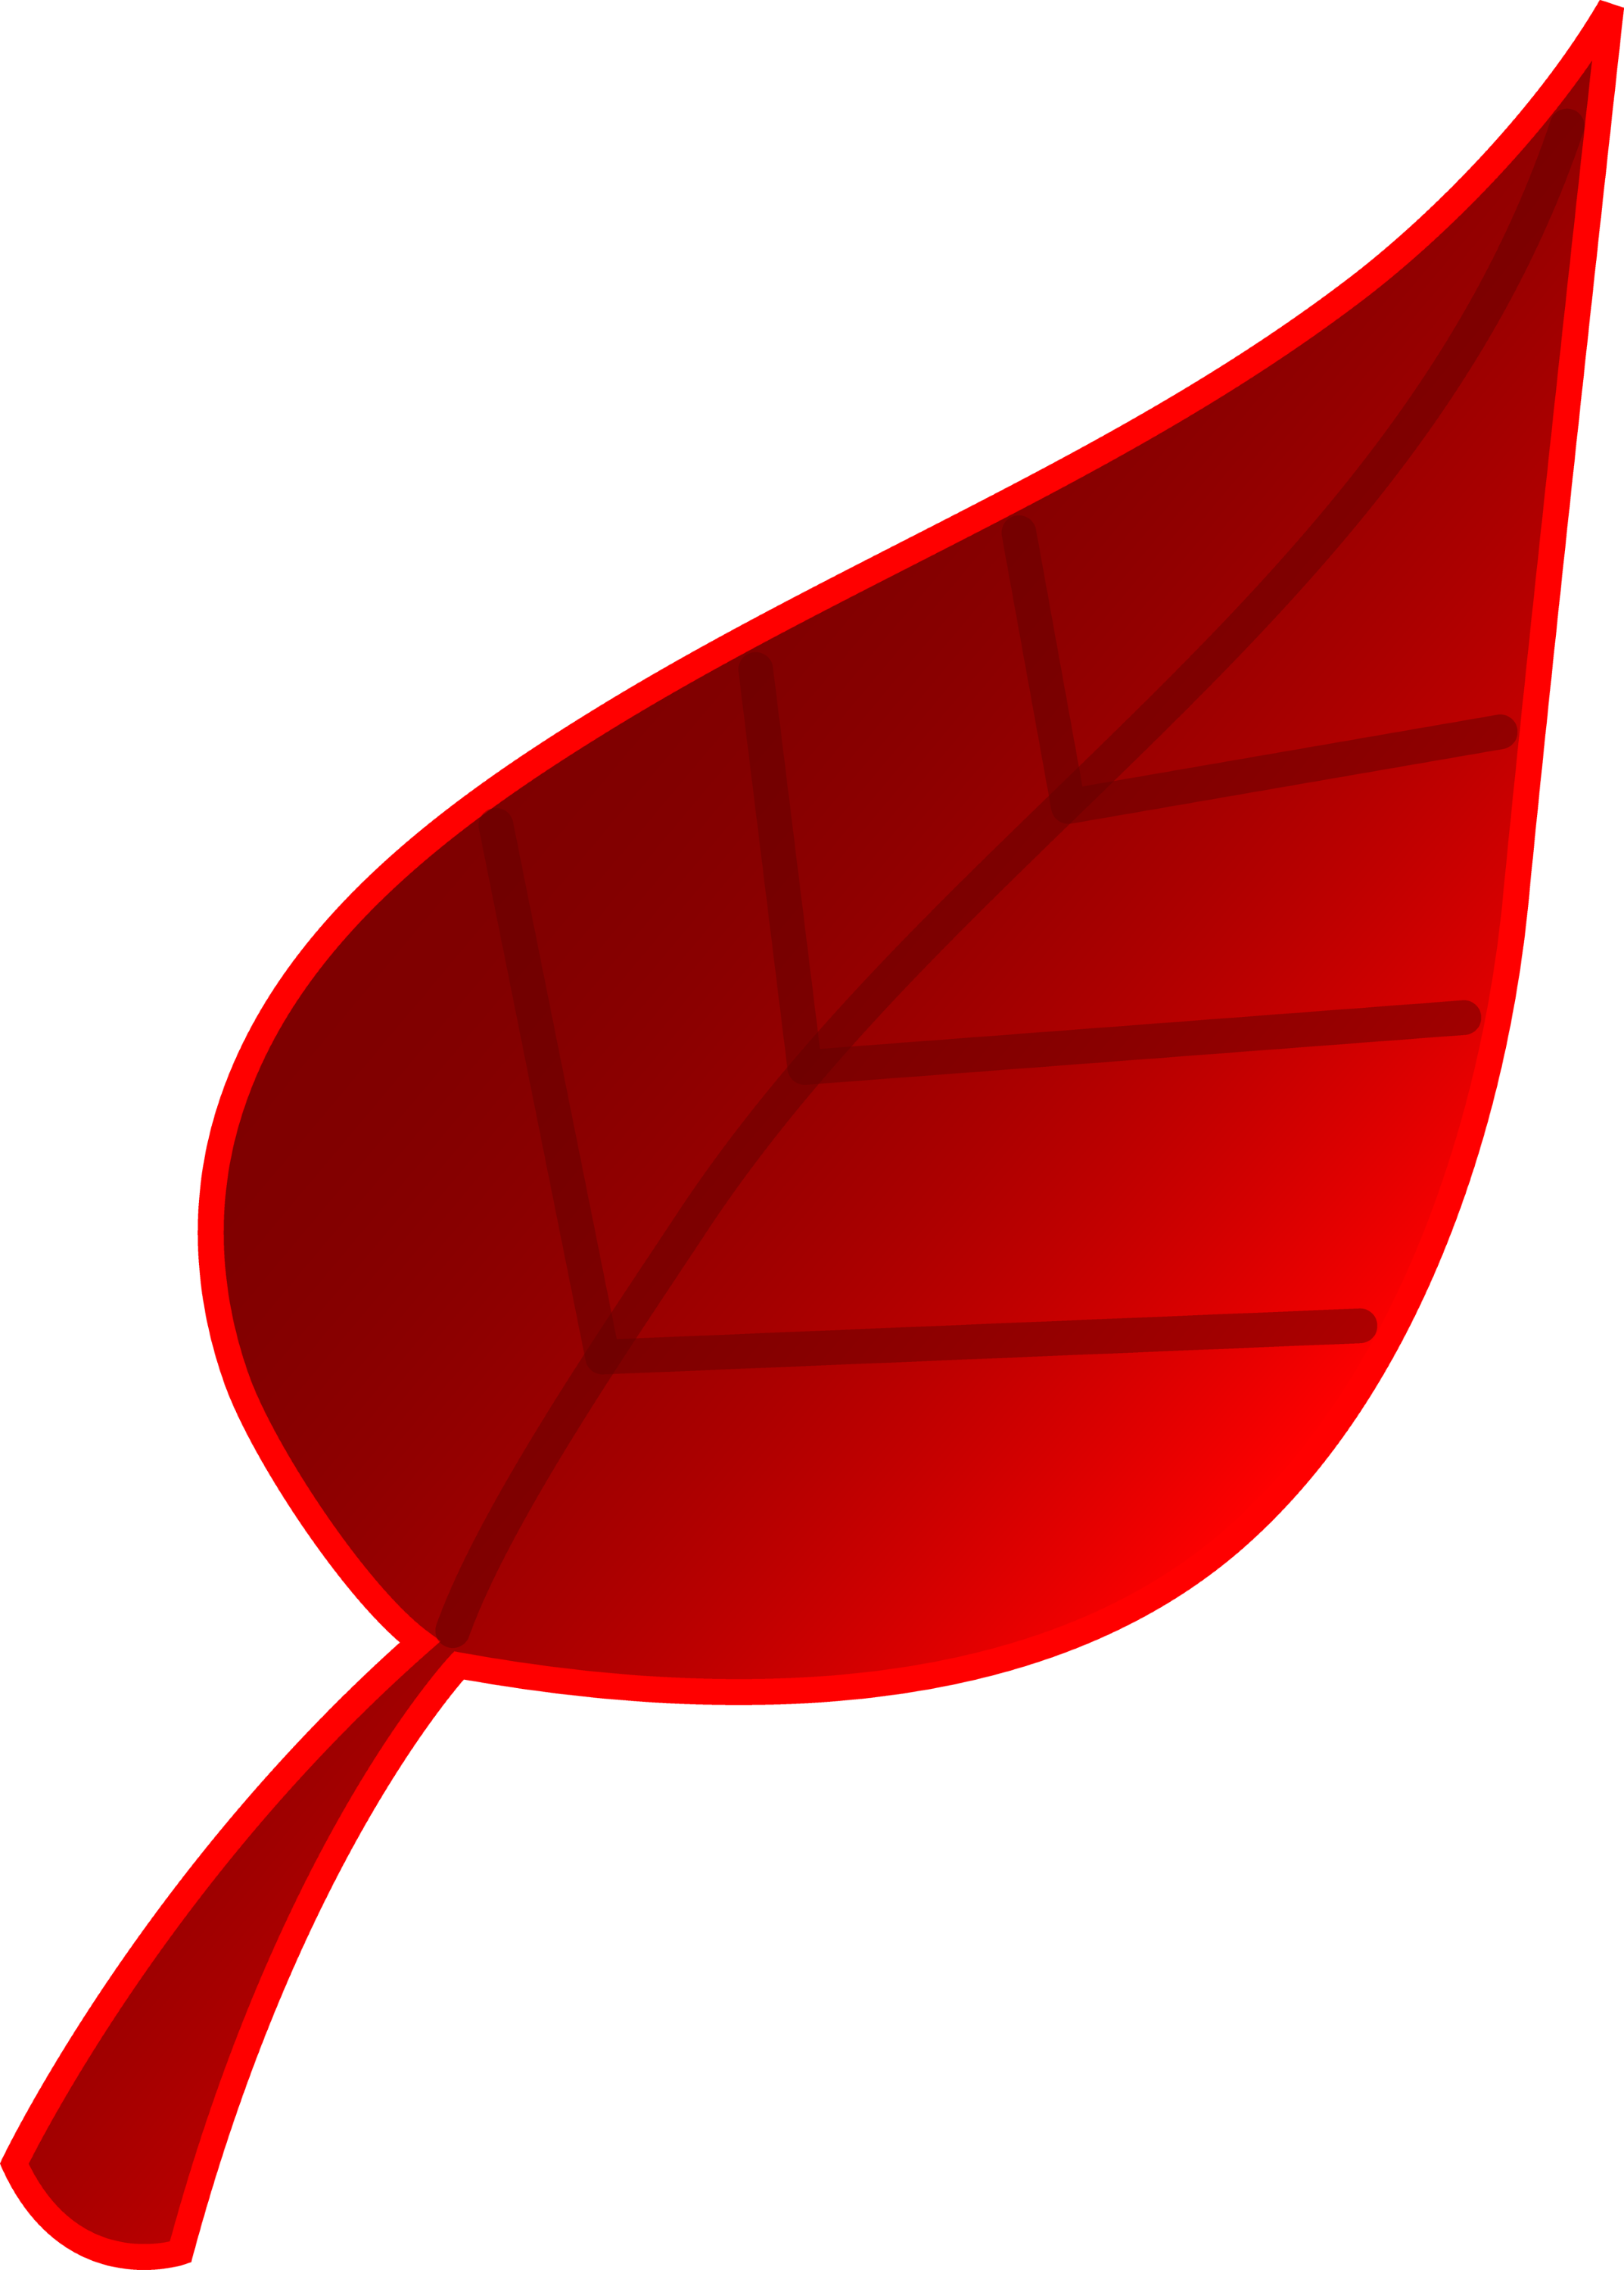 Red Tree Leaf Vector Art - Free Clip Art